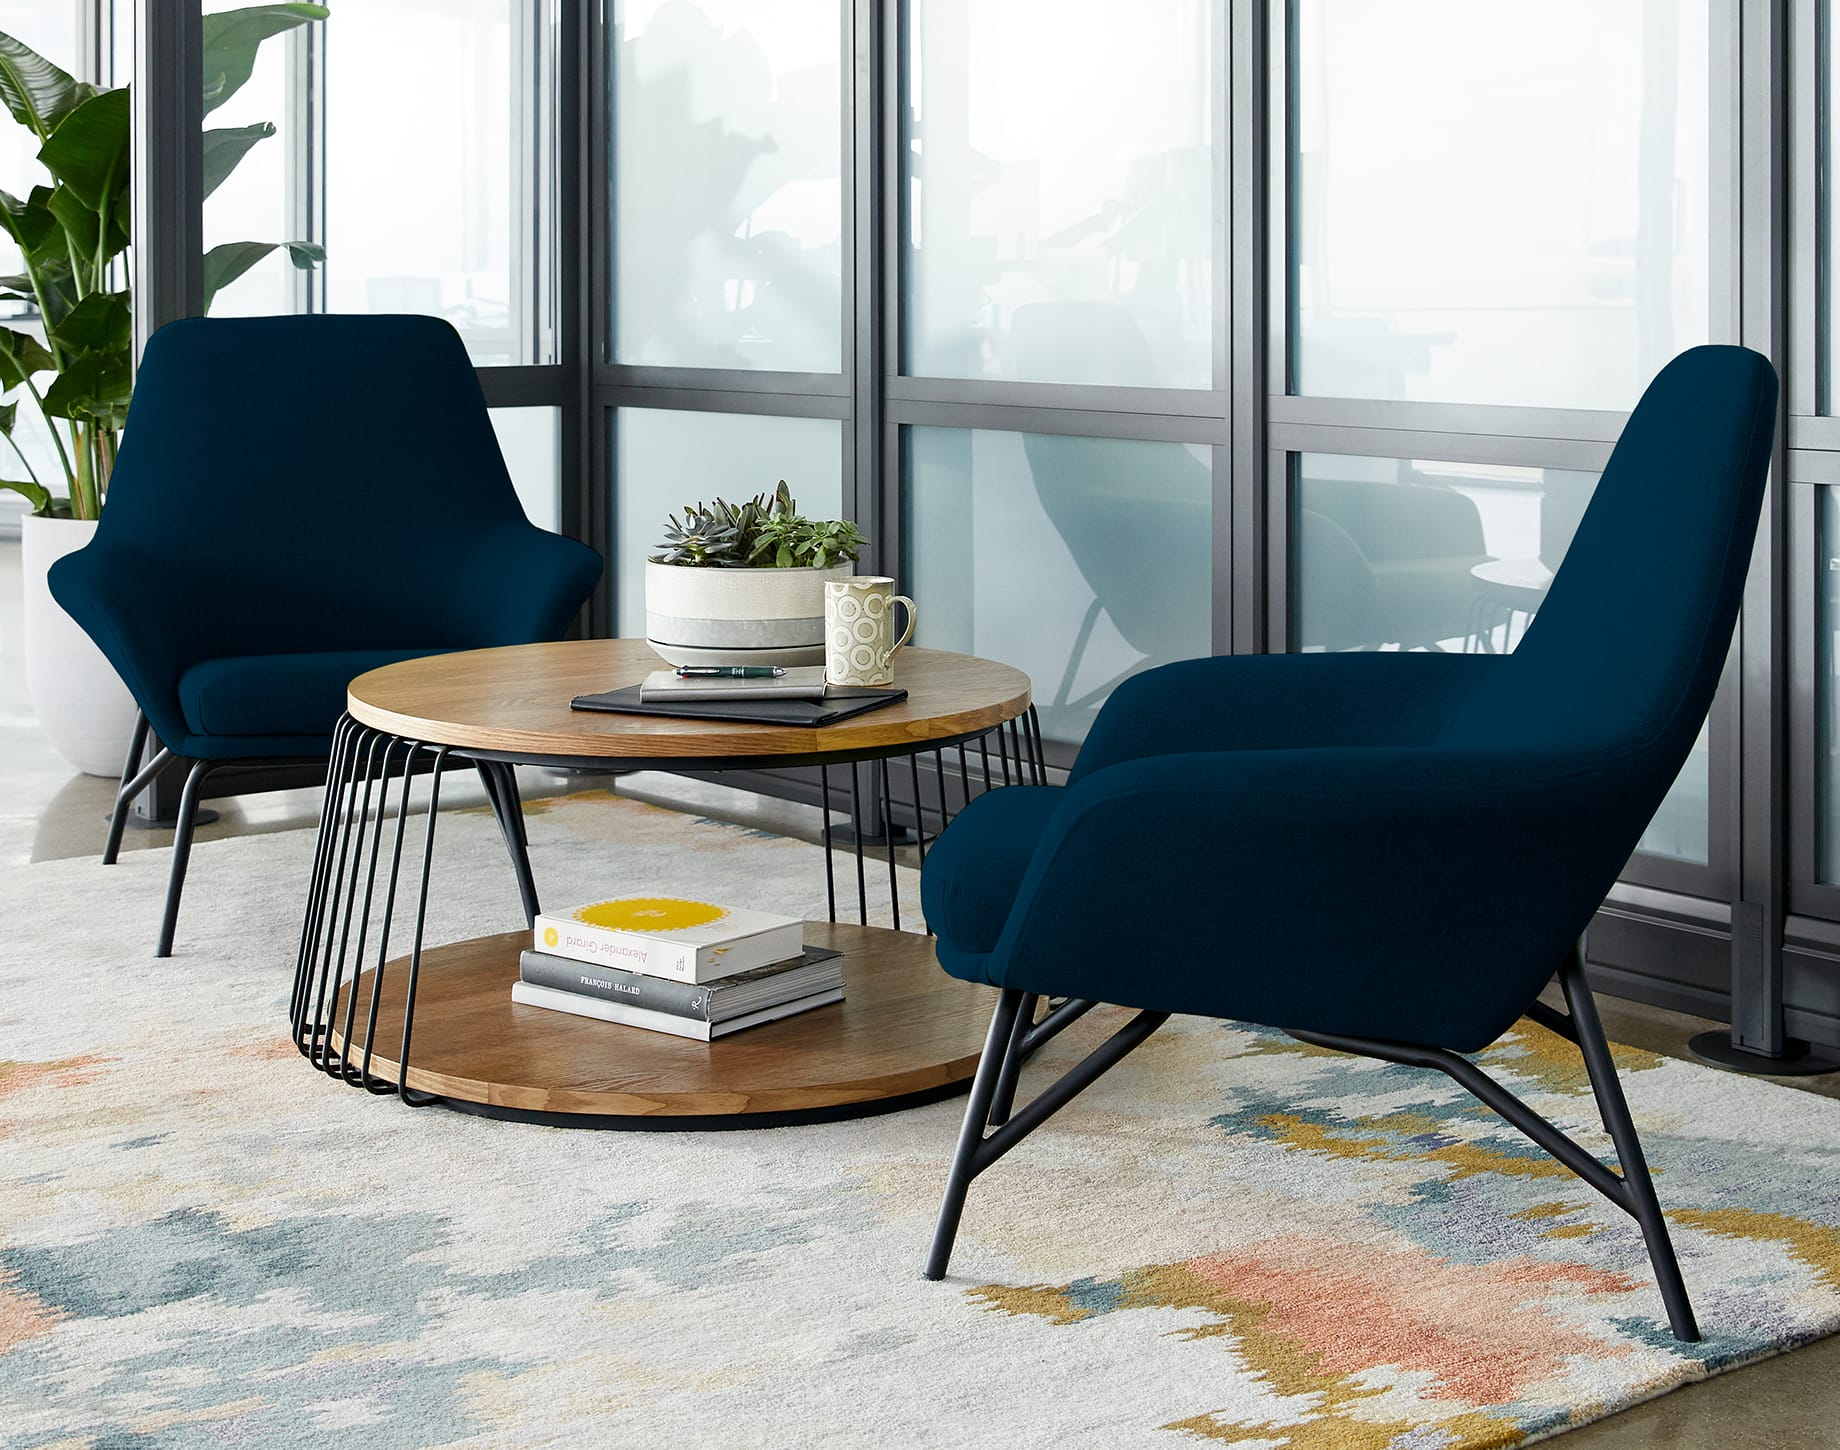 two chairs in navy are positioned around a coffee table